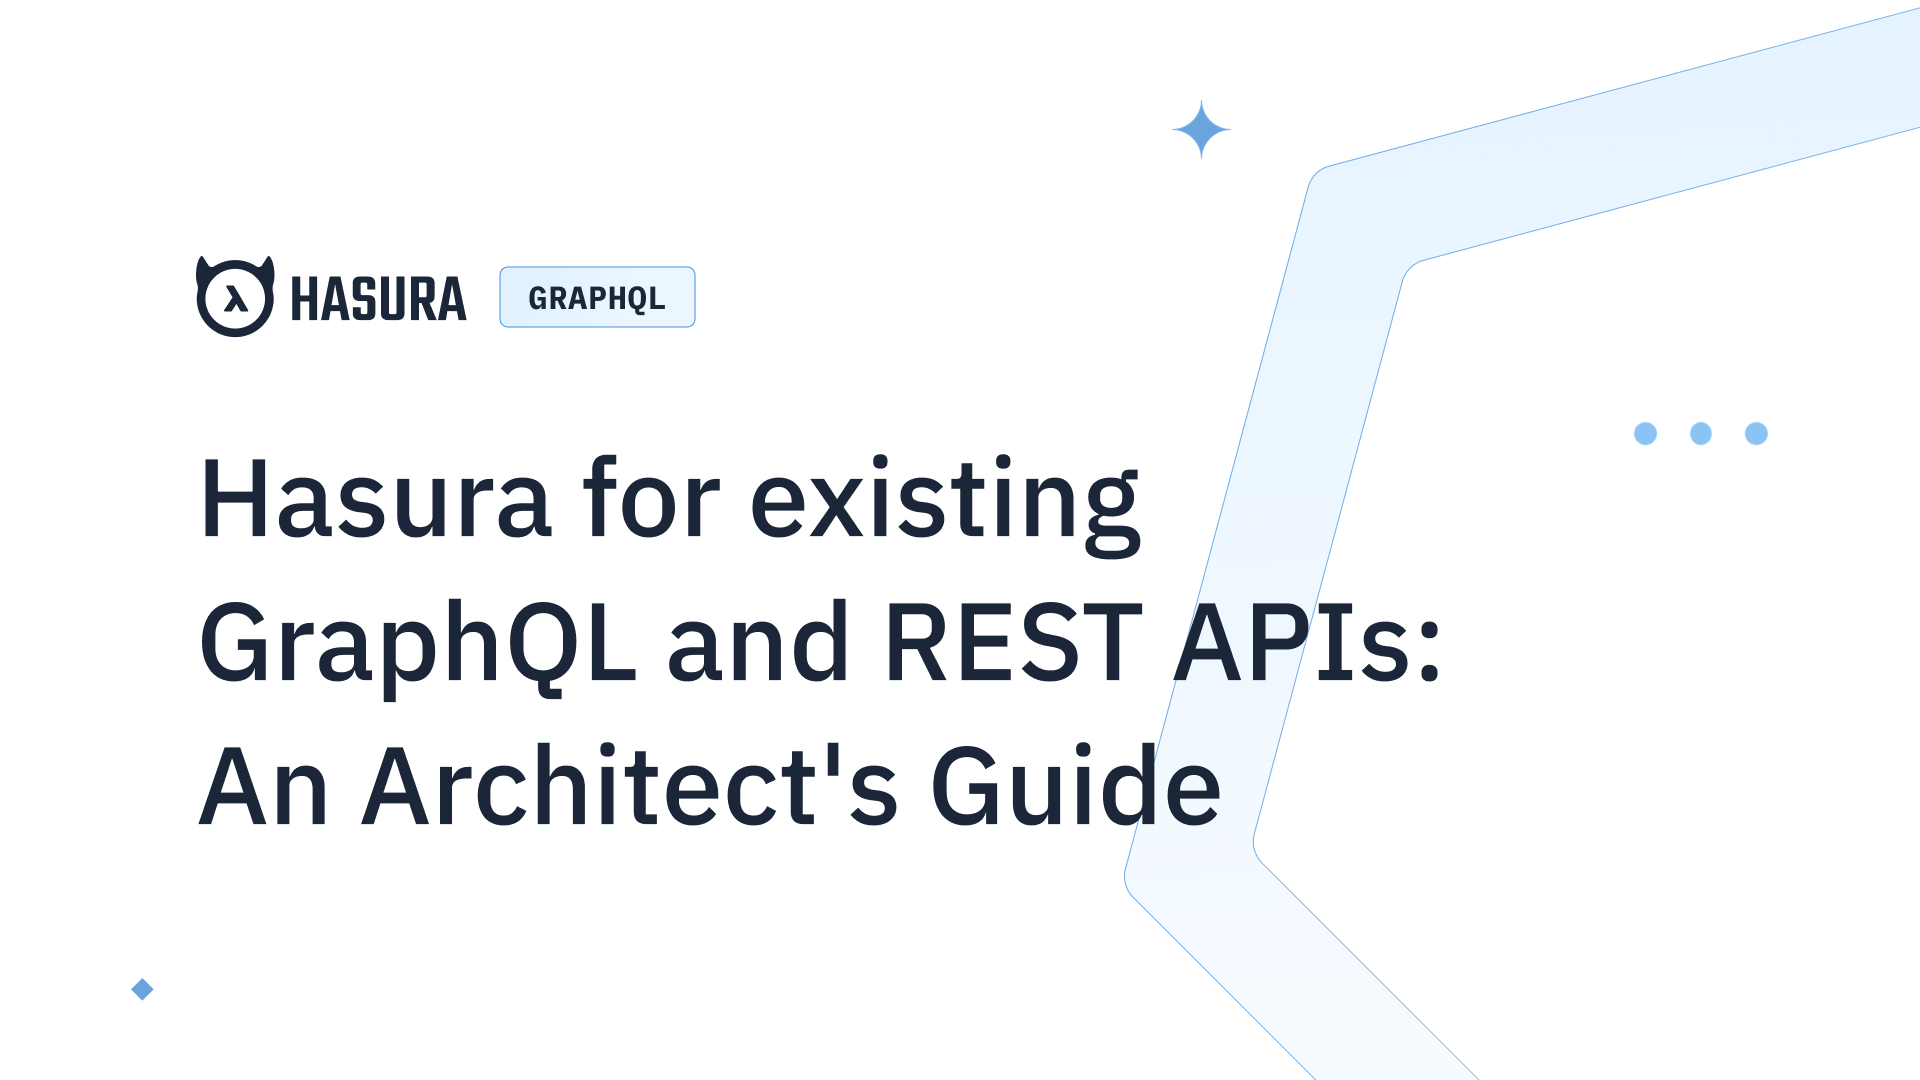 Architect Guide for using Hasura with existing GraphQL and REST APIs